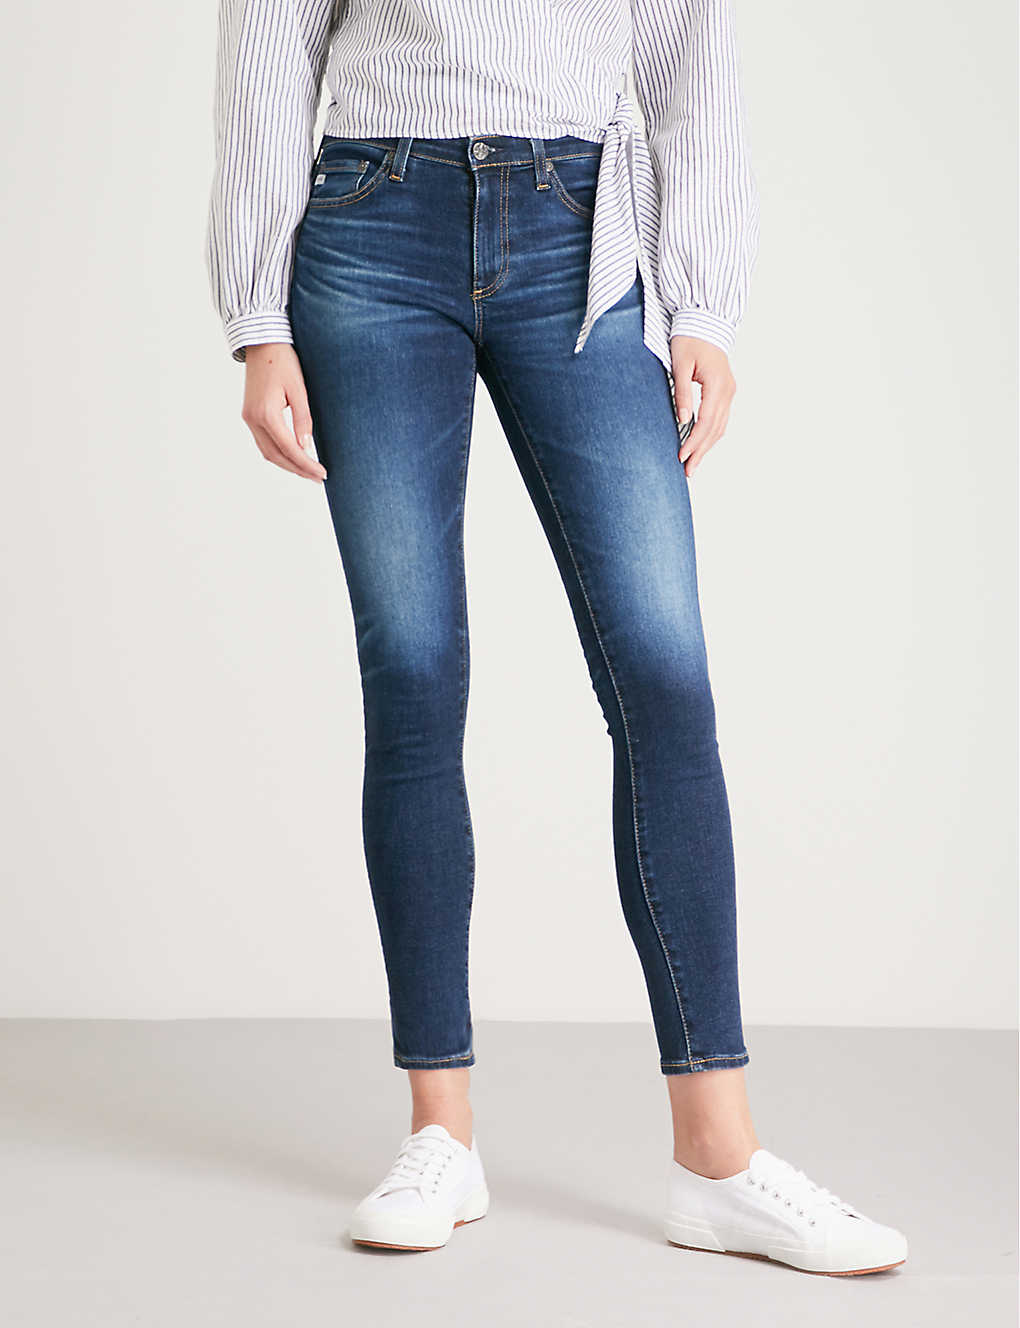 Ag The Legging Ankle Super Skinny Mid-rise Jeans In 7 Years Timeless